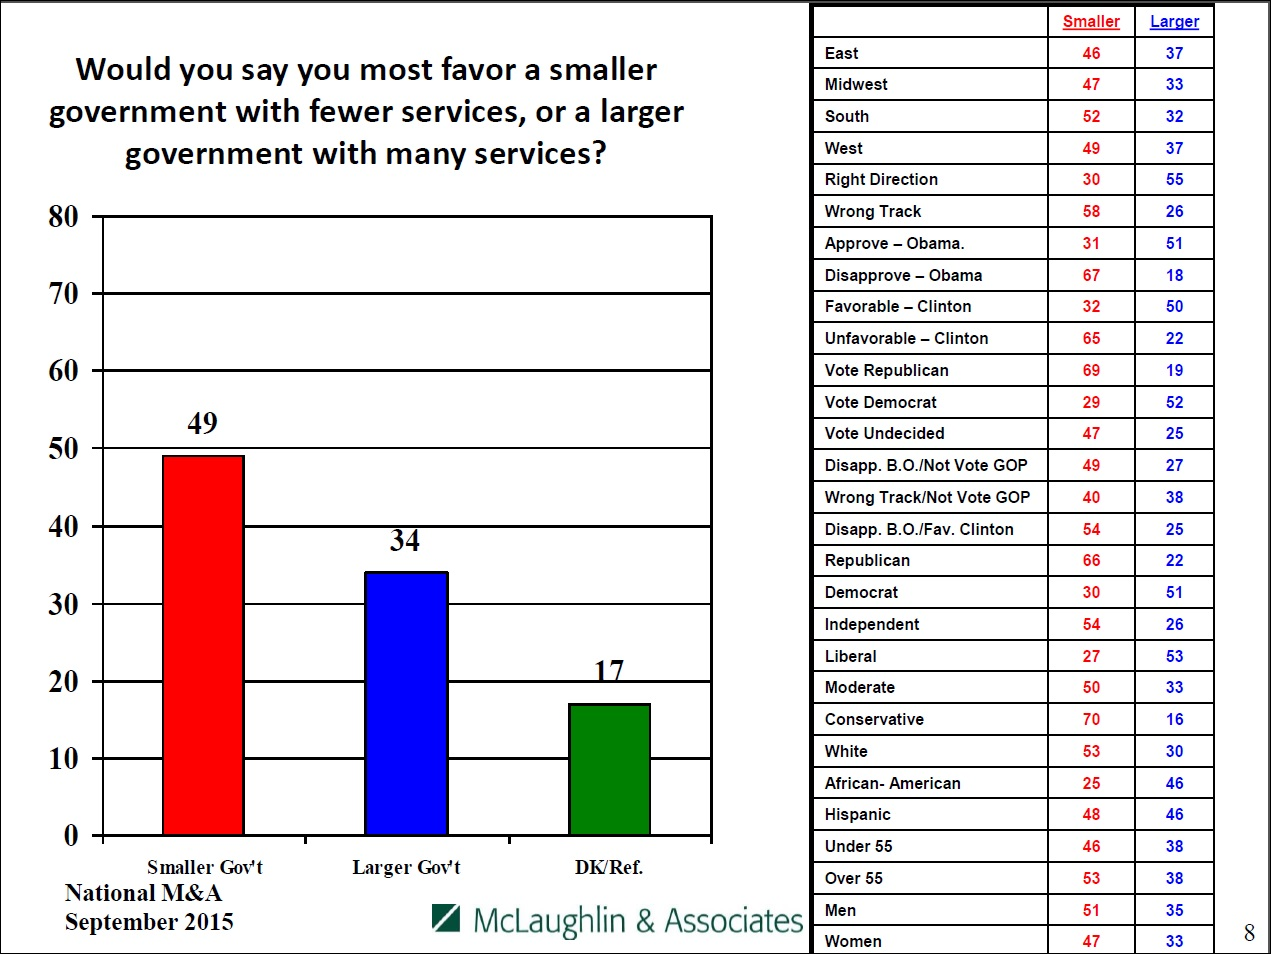 Smaller government vs. larger governement, by party and affiliation